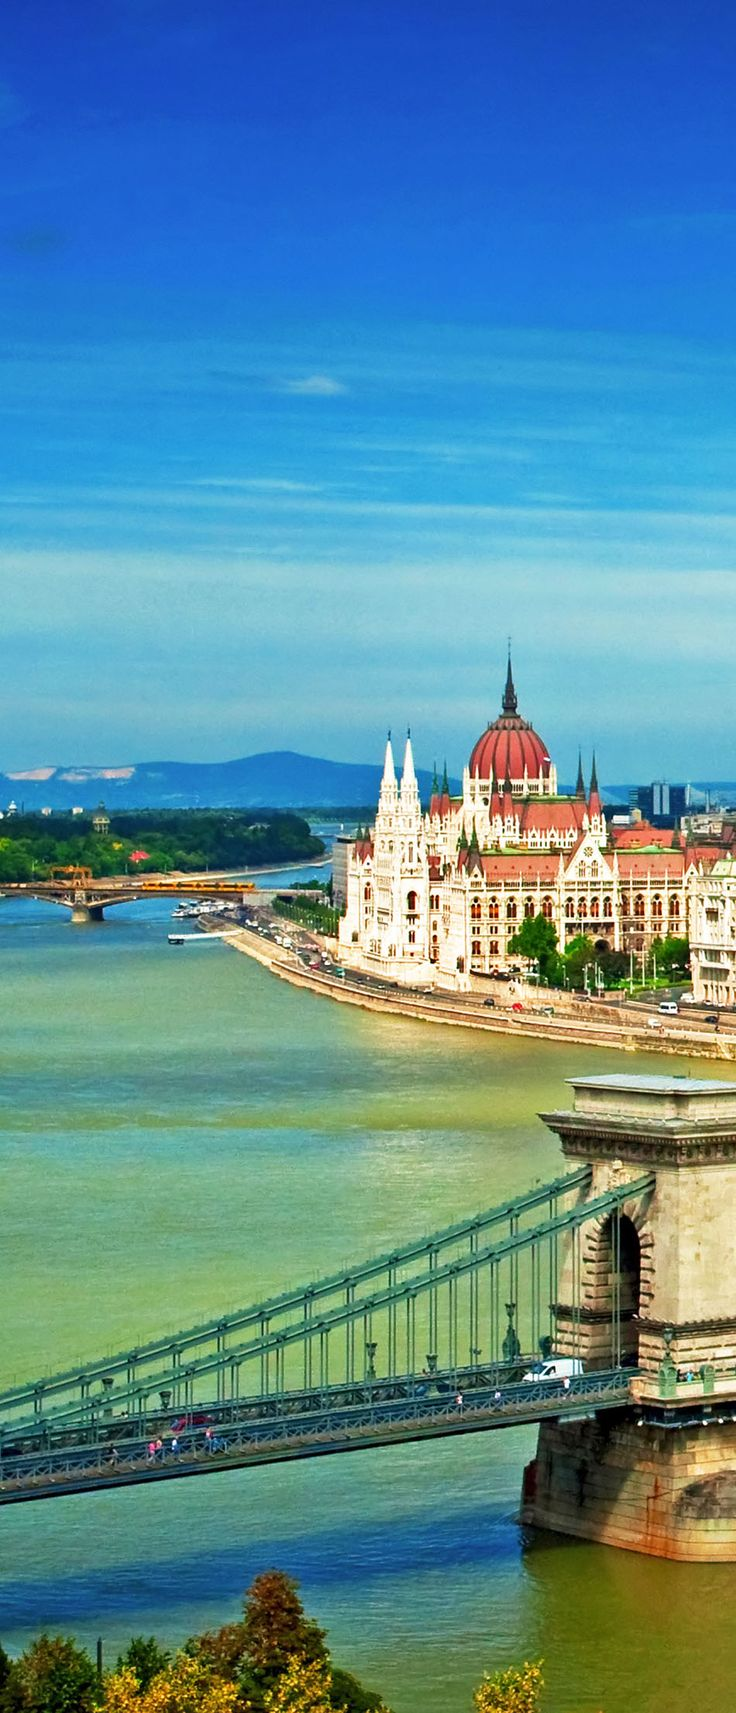 Nice view on Budapest, Hungary | Amazing Photography Of Cities and Famous Landmarks From Around The World